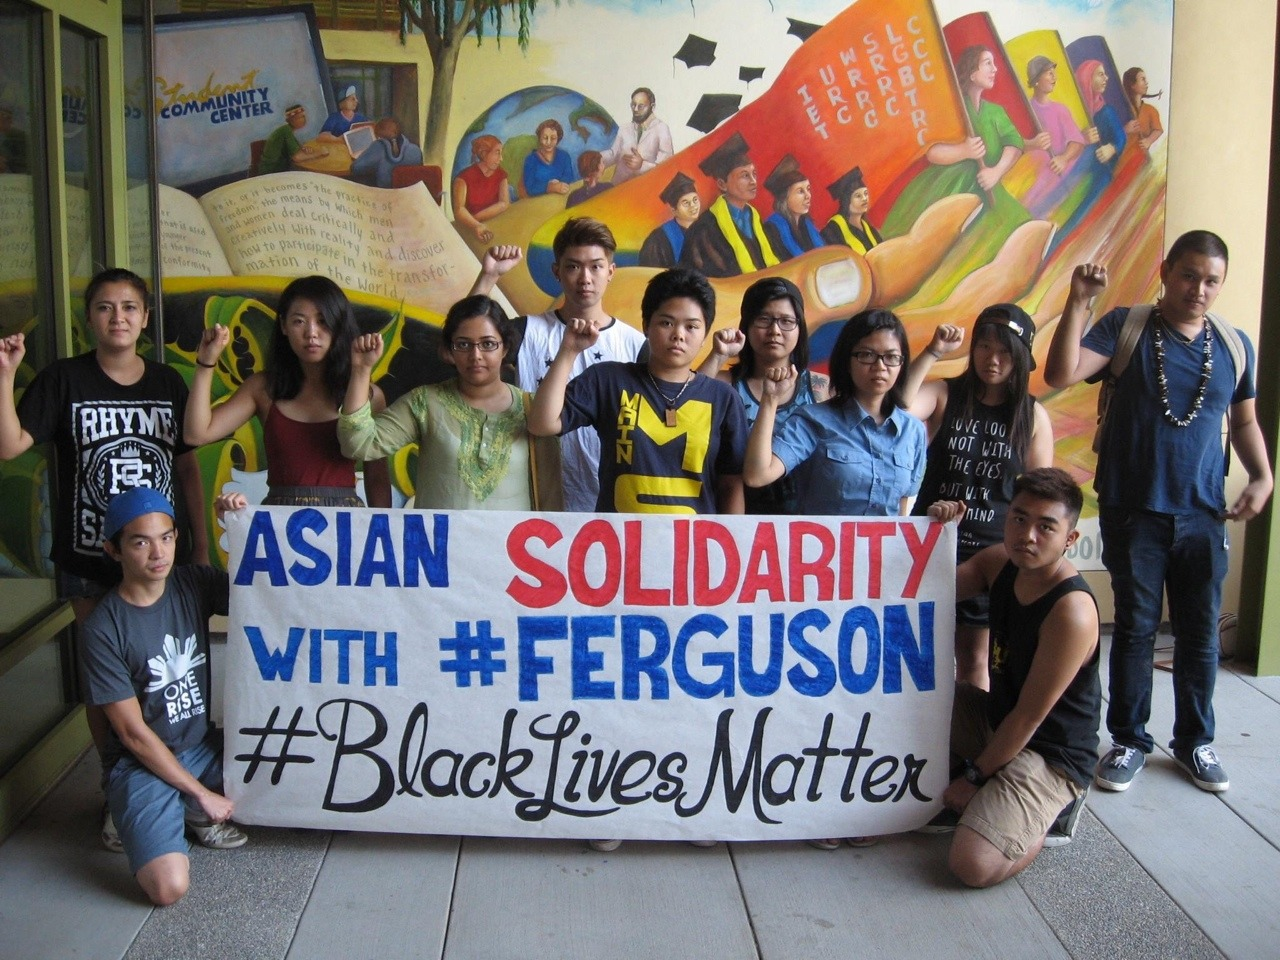 jazzy-w:    Members of the Asian American community at UC Davis are taking a stand in solidarity with the people of Ferguson and their continued struggle for survival in the face of police brutality. All black lives matter.